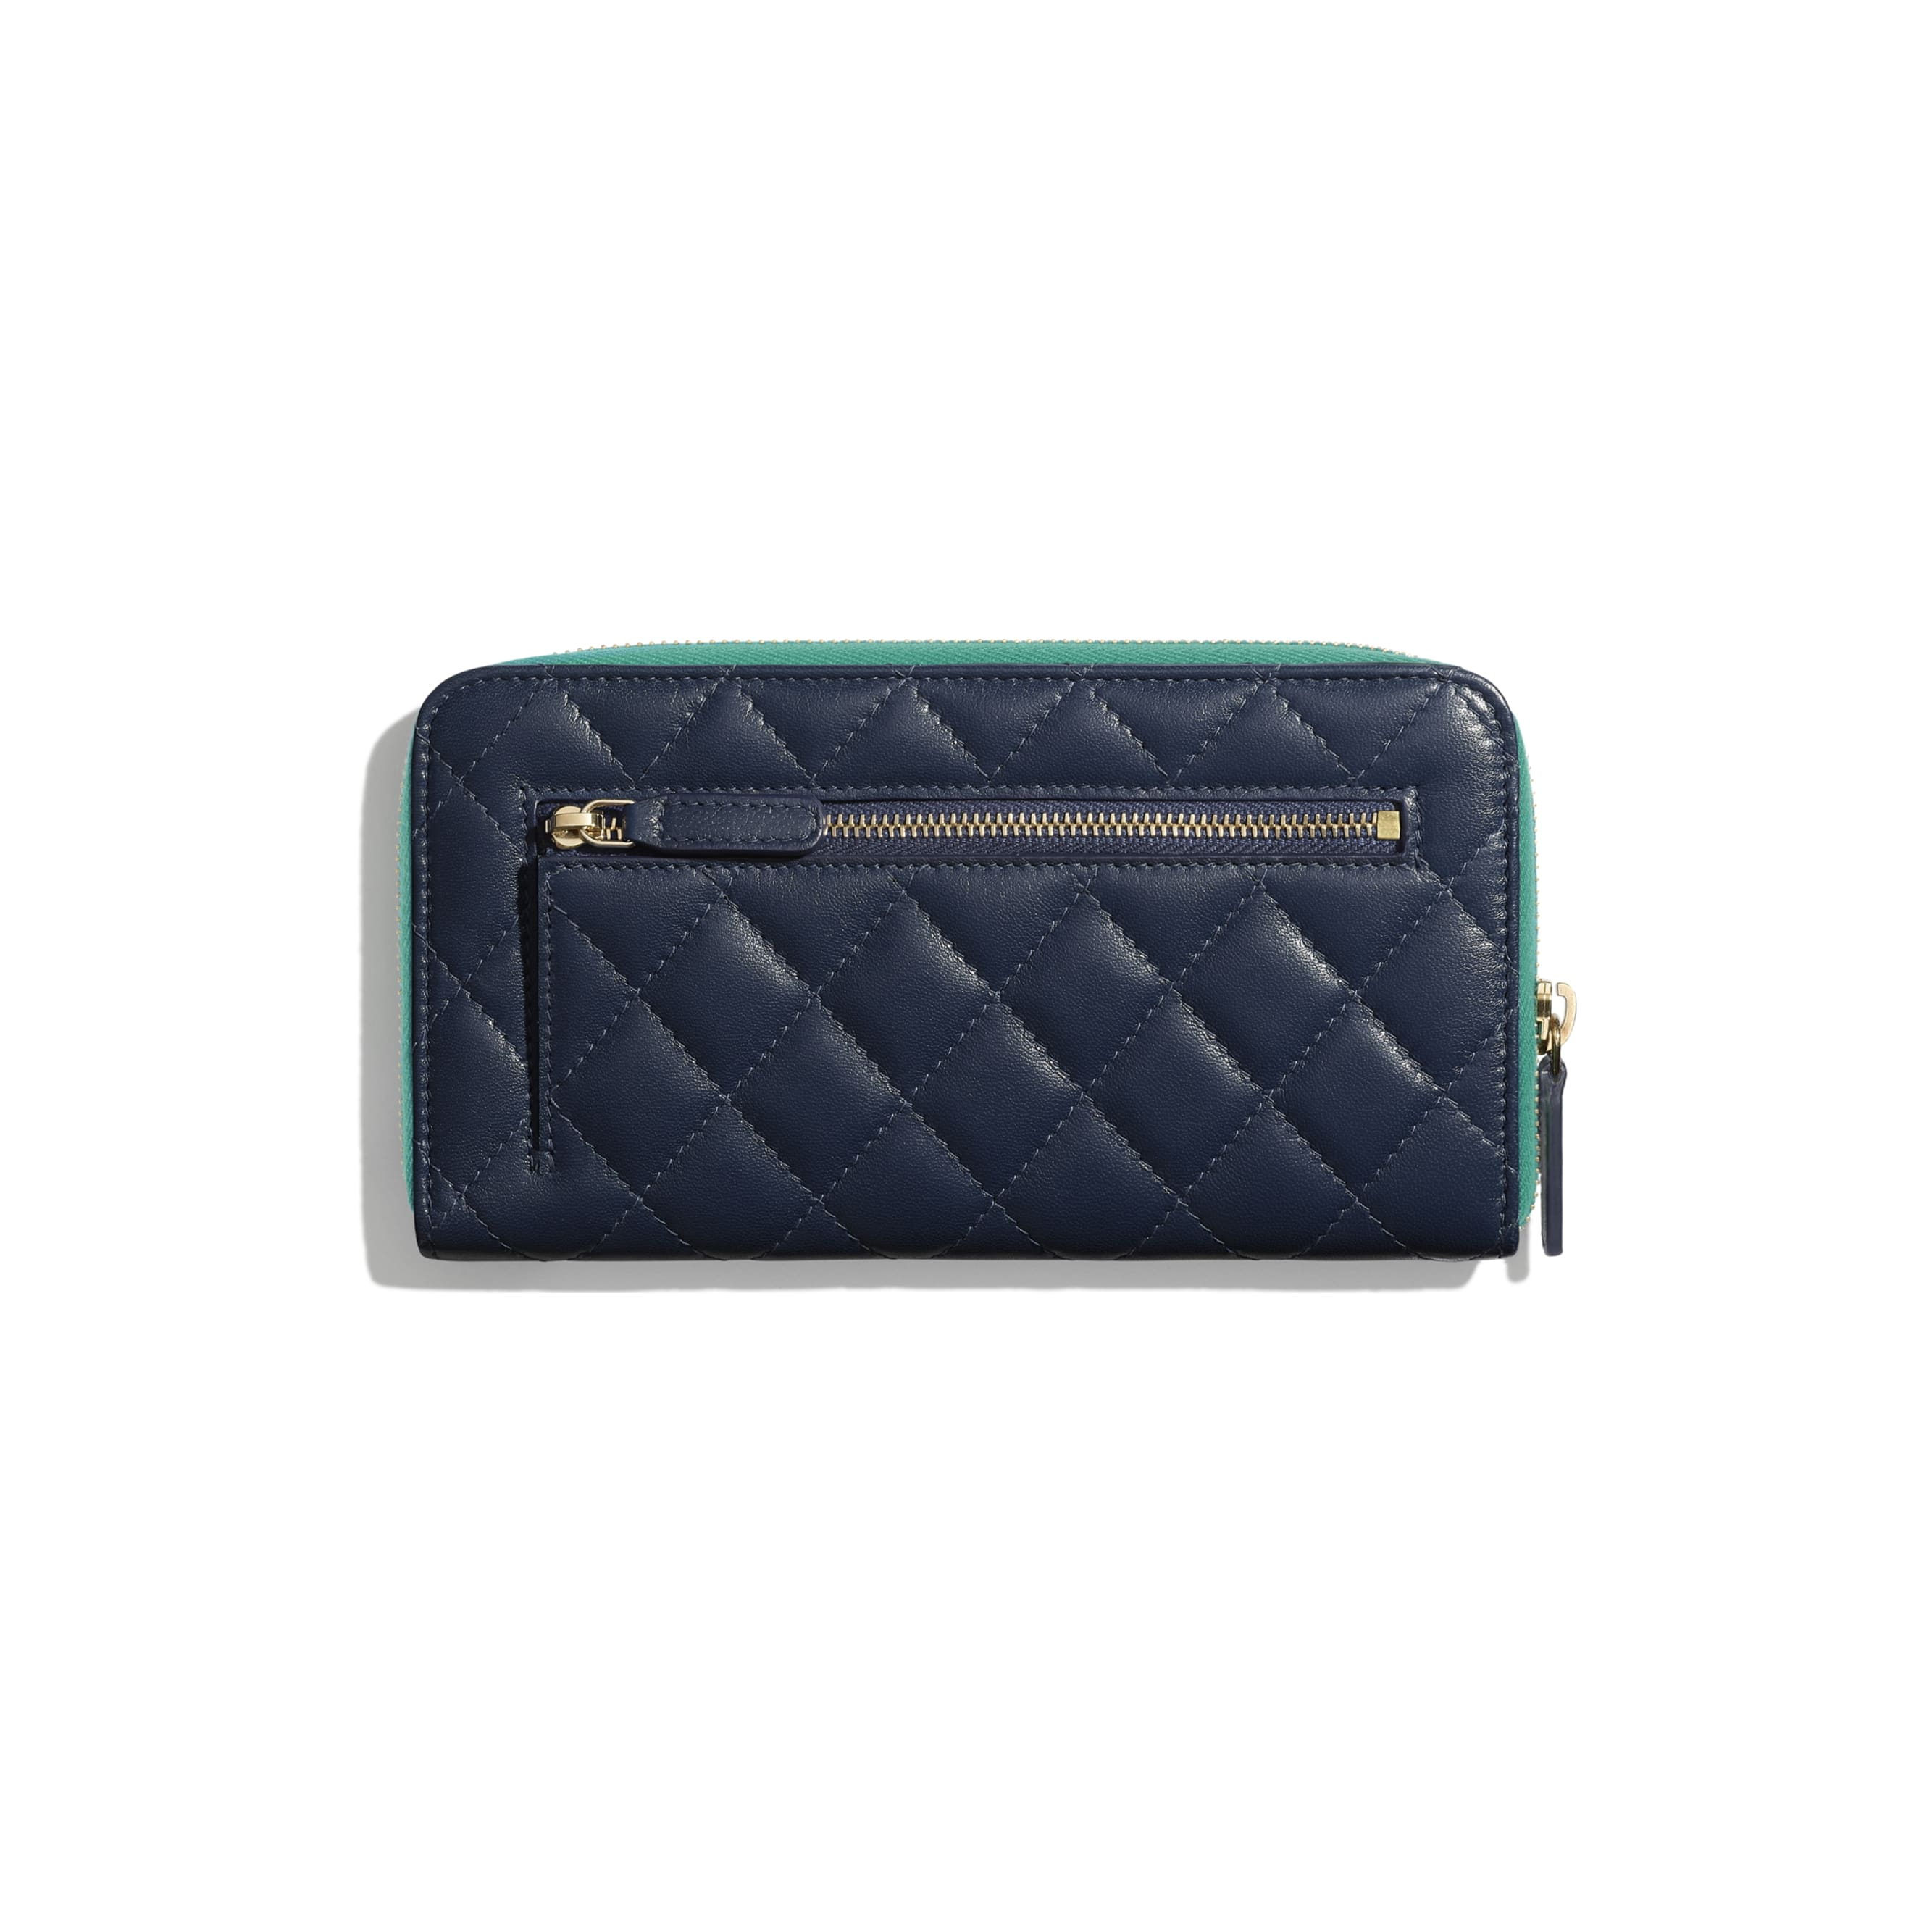 Long Zipped Wallet - Navy Blue, Green & Dark Pink - Goatskin & Gold-Tone Metal - Alternative view - see standard sized version